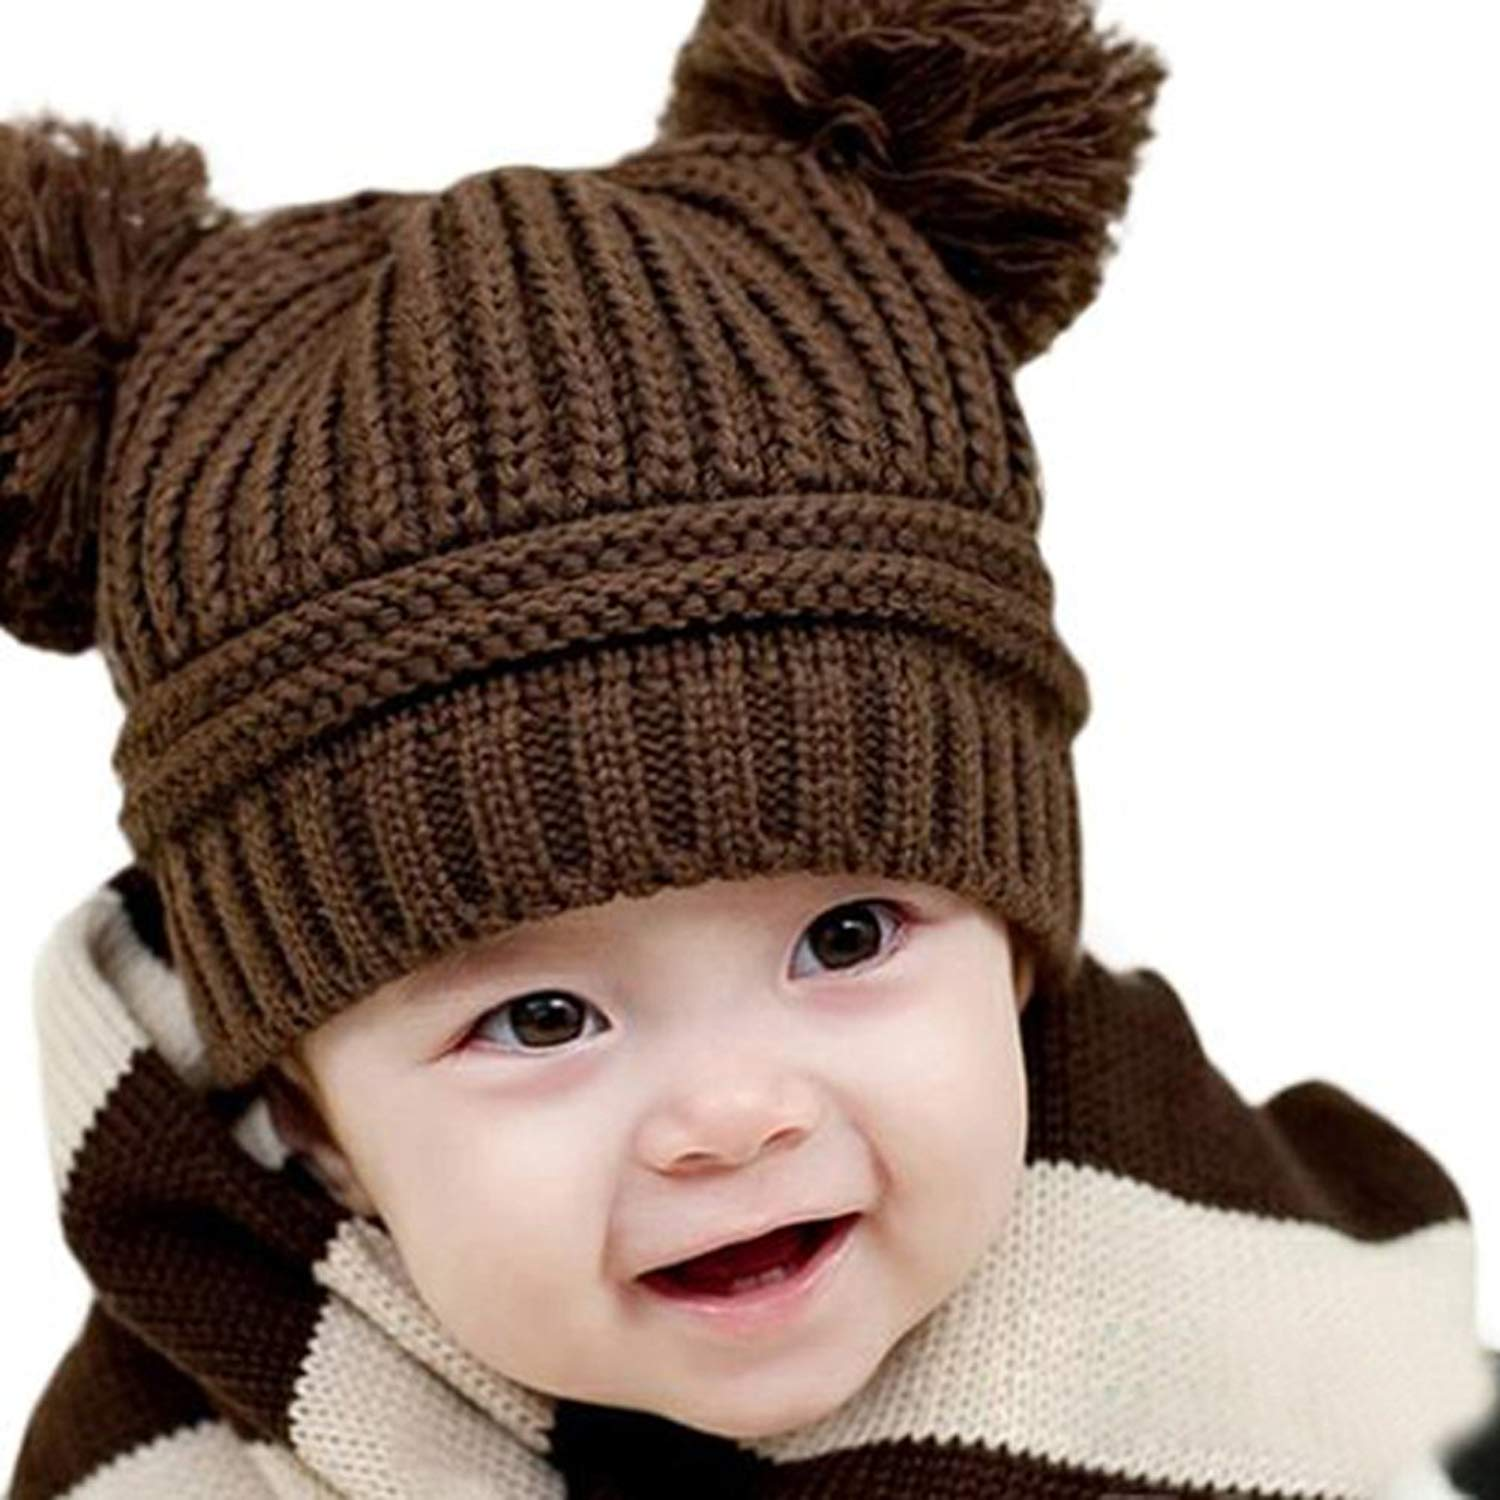 Girl's Hats Smart Hot New 1 Pc Cute Baby Winter Hat Warm Child Beanie Cap Animal Cat Ear Kids Crochet Knitted Hat For Children Boys Girls Girl's Accessories